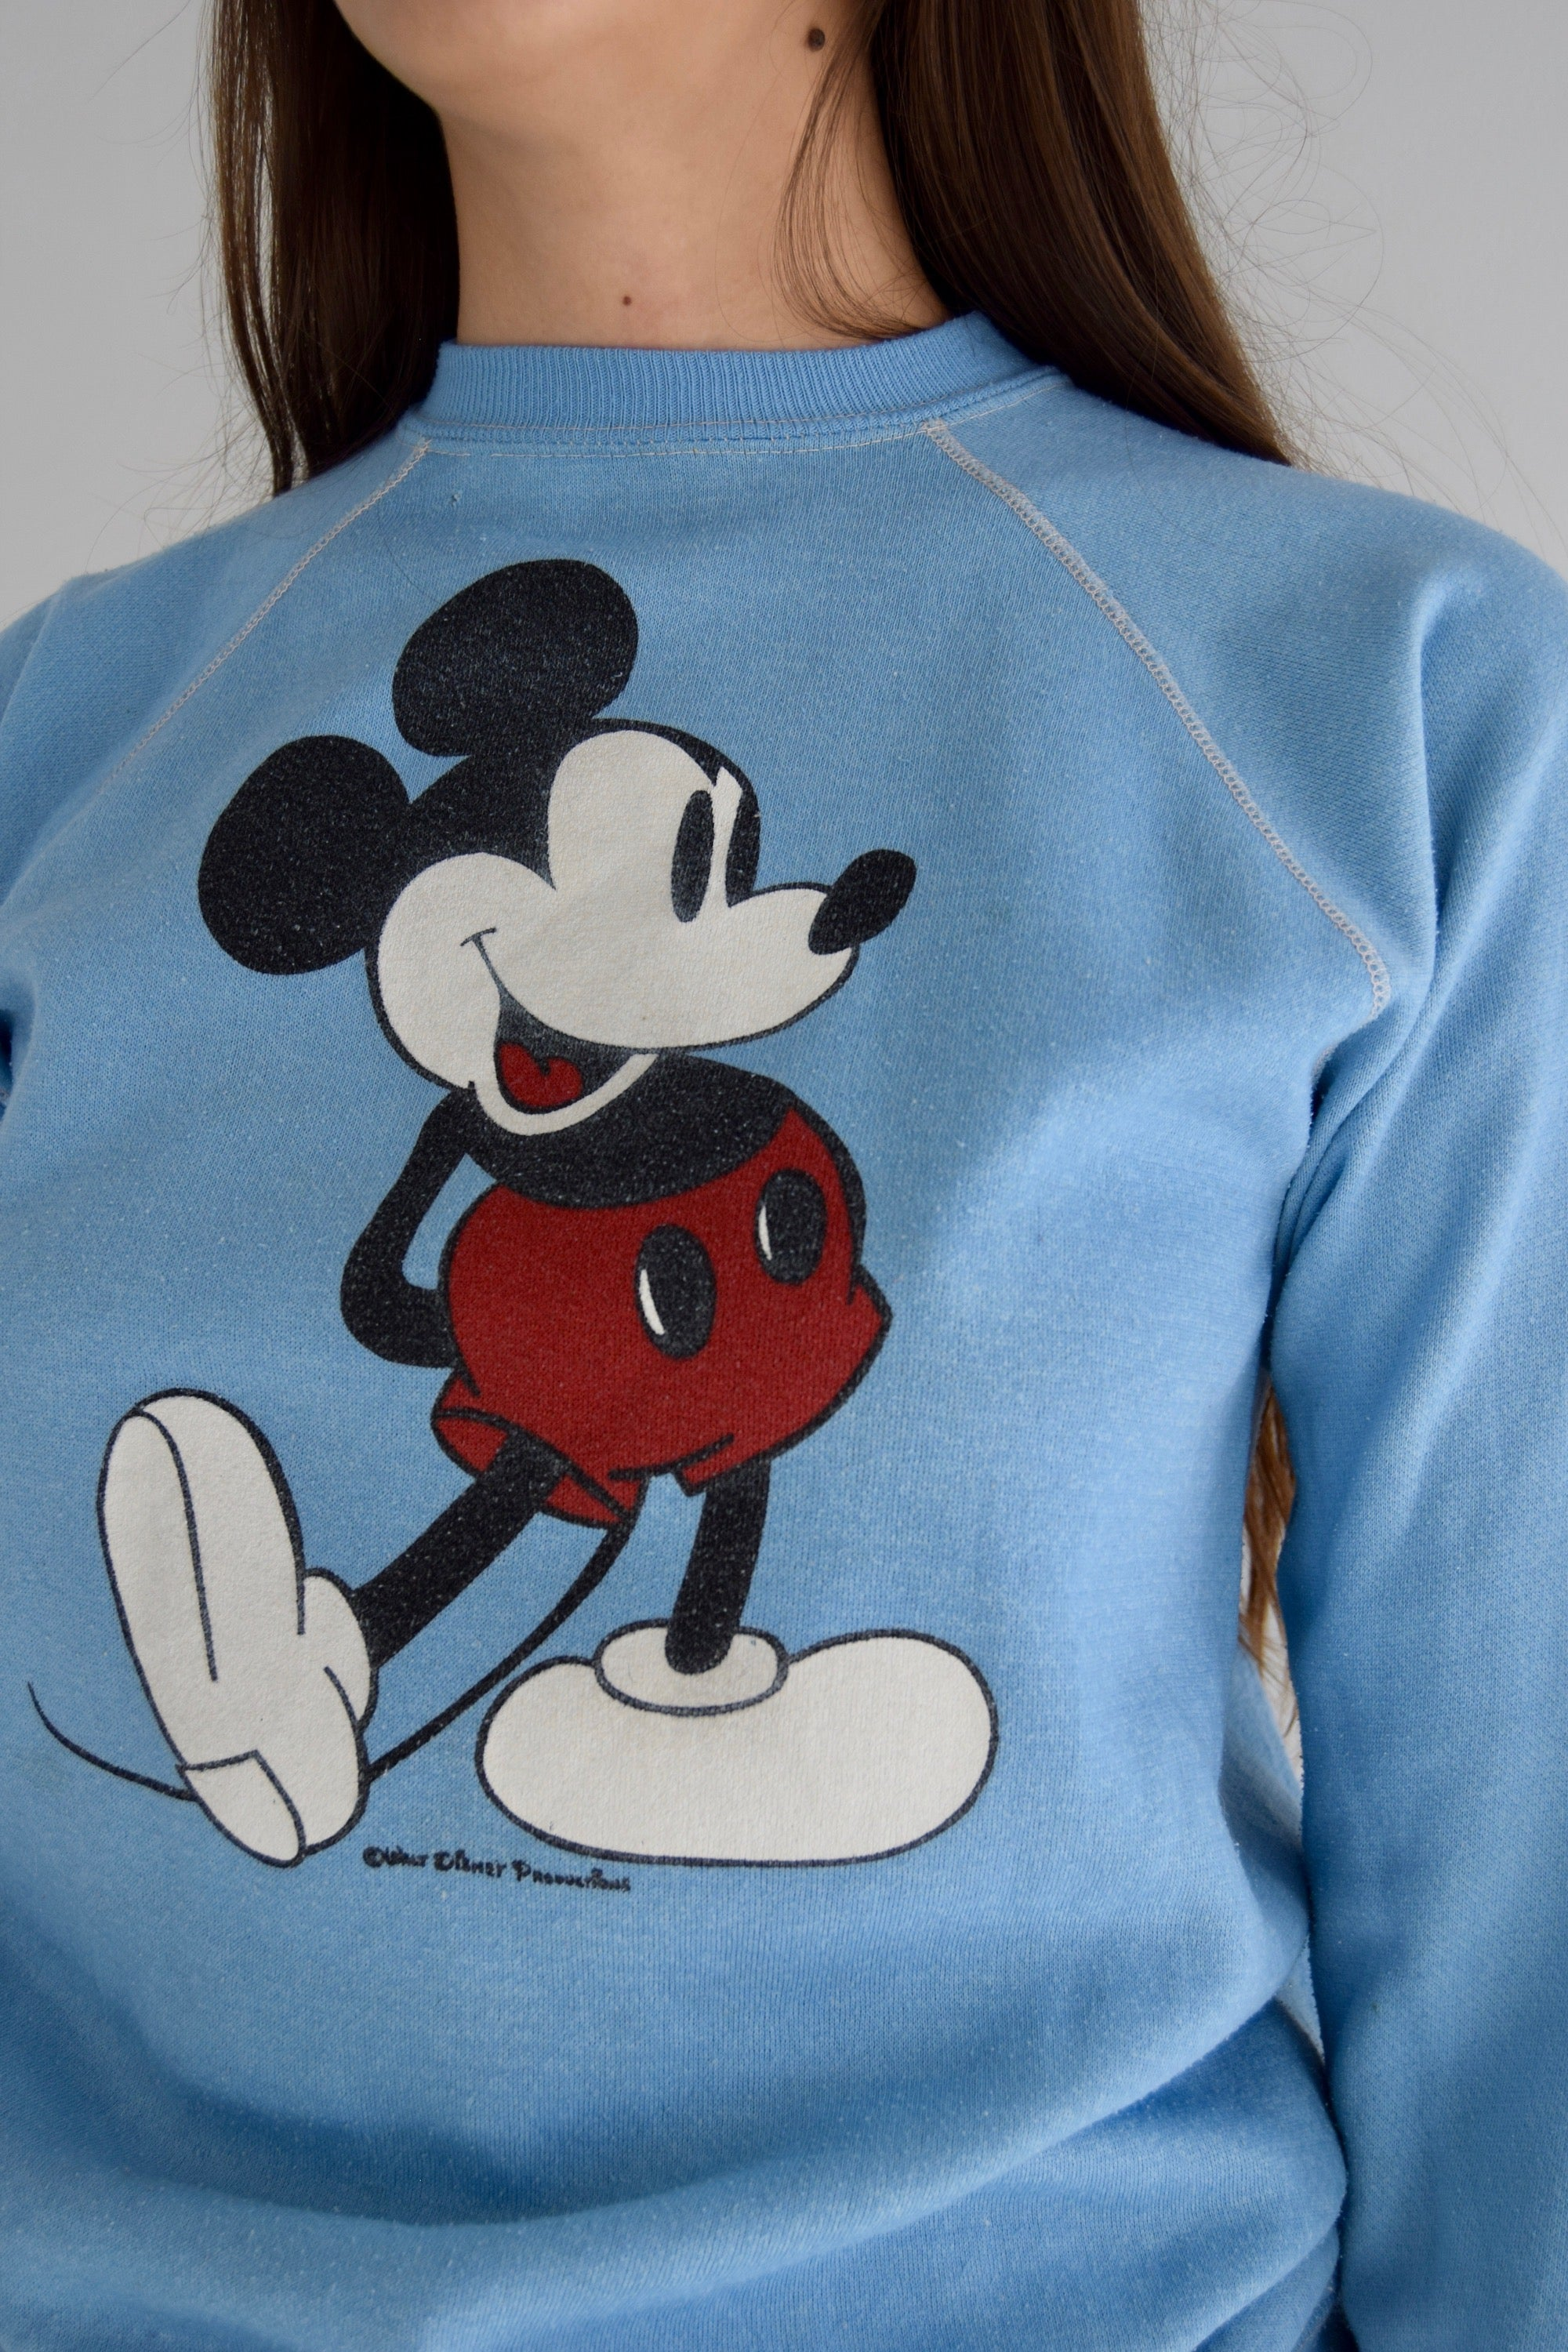 Vintage Mickey Mouse Powder Blue Crew Neck Sweatshirt FREE SHIPPING TO THE U.S.